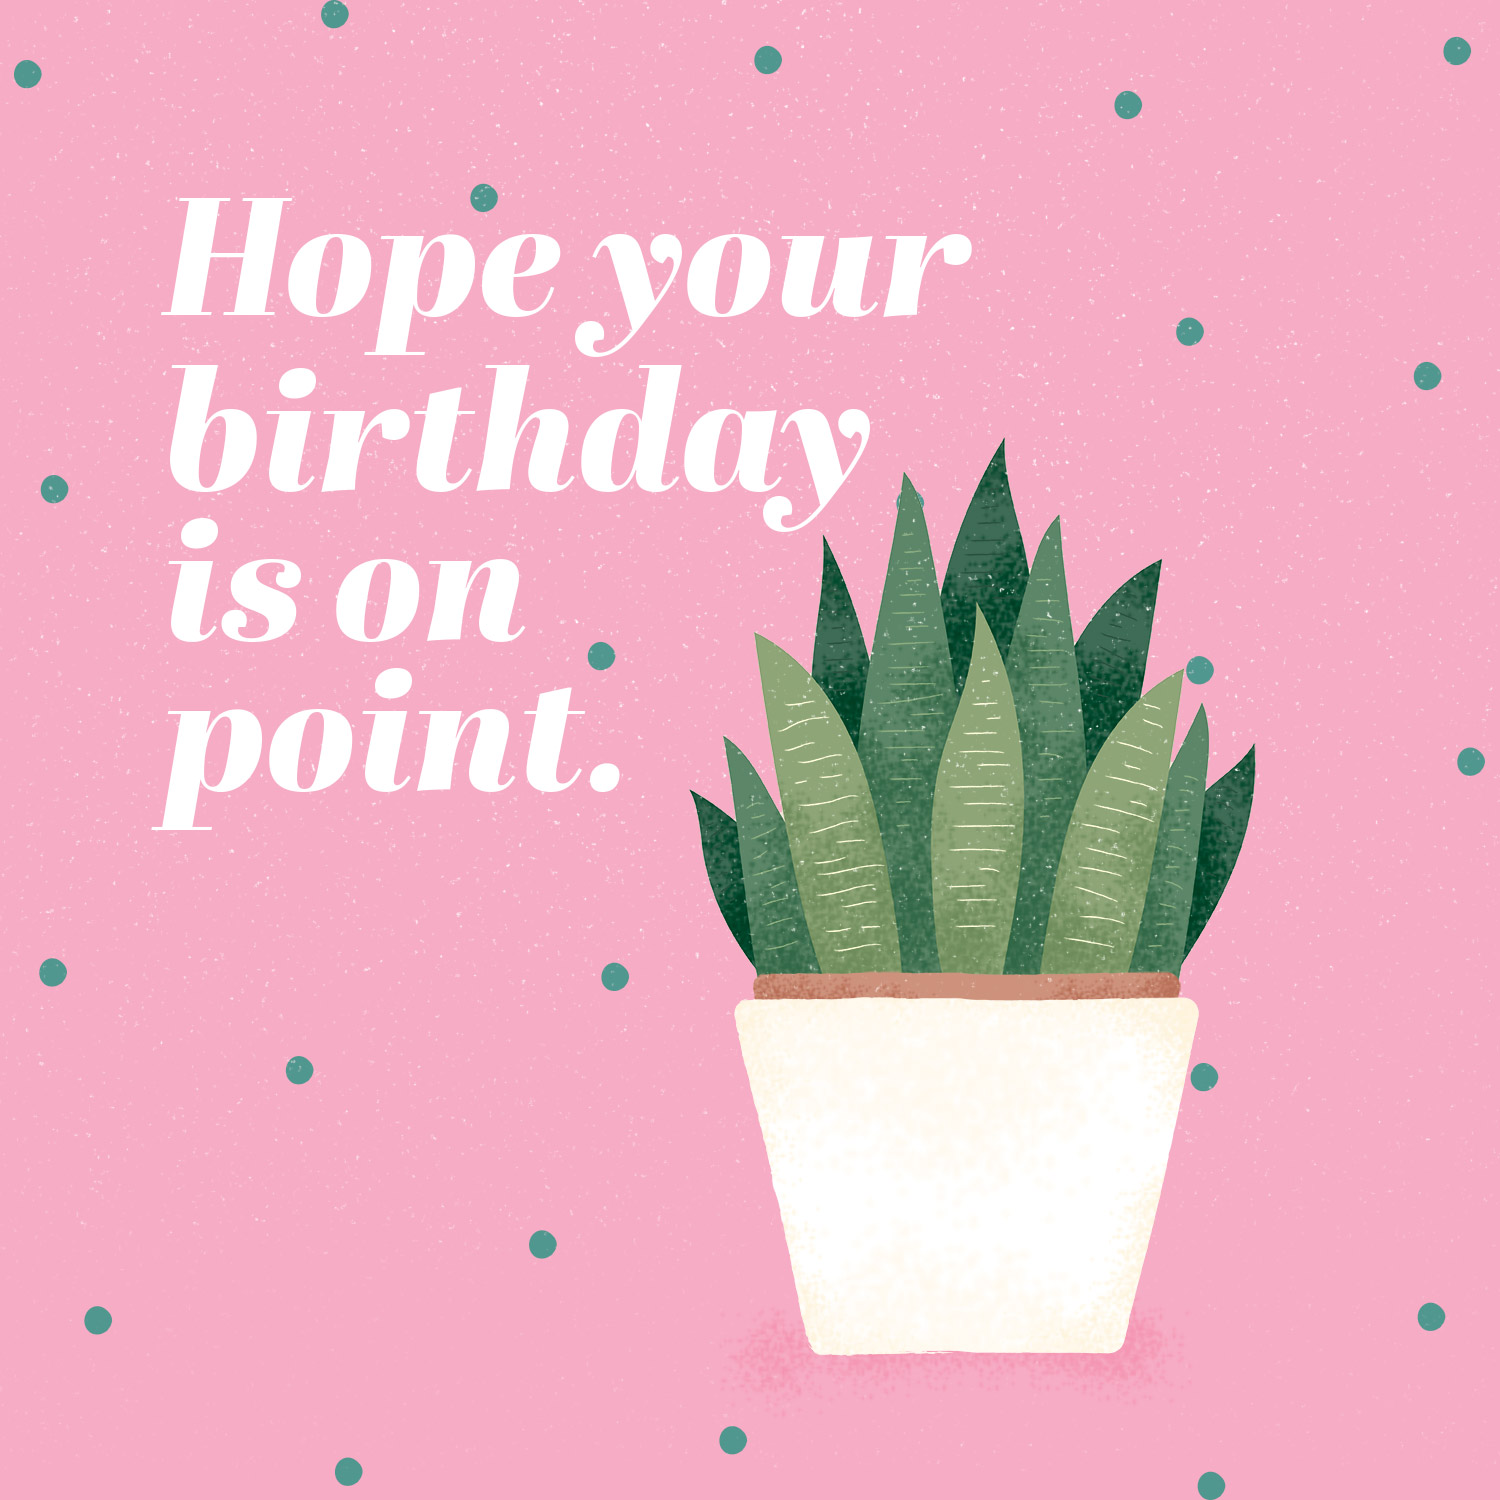 cactus puns hope your birthday is on point